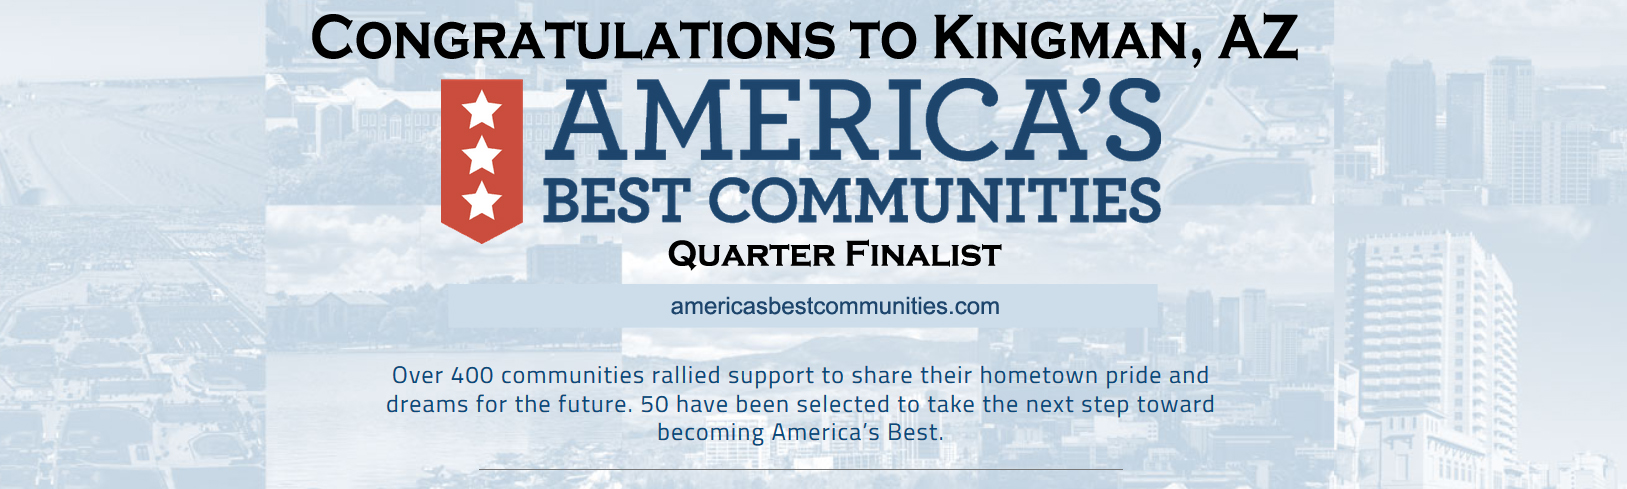 Kingman-AZ-Real-Estate-Americas-Best-communities